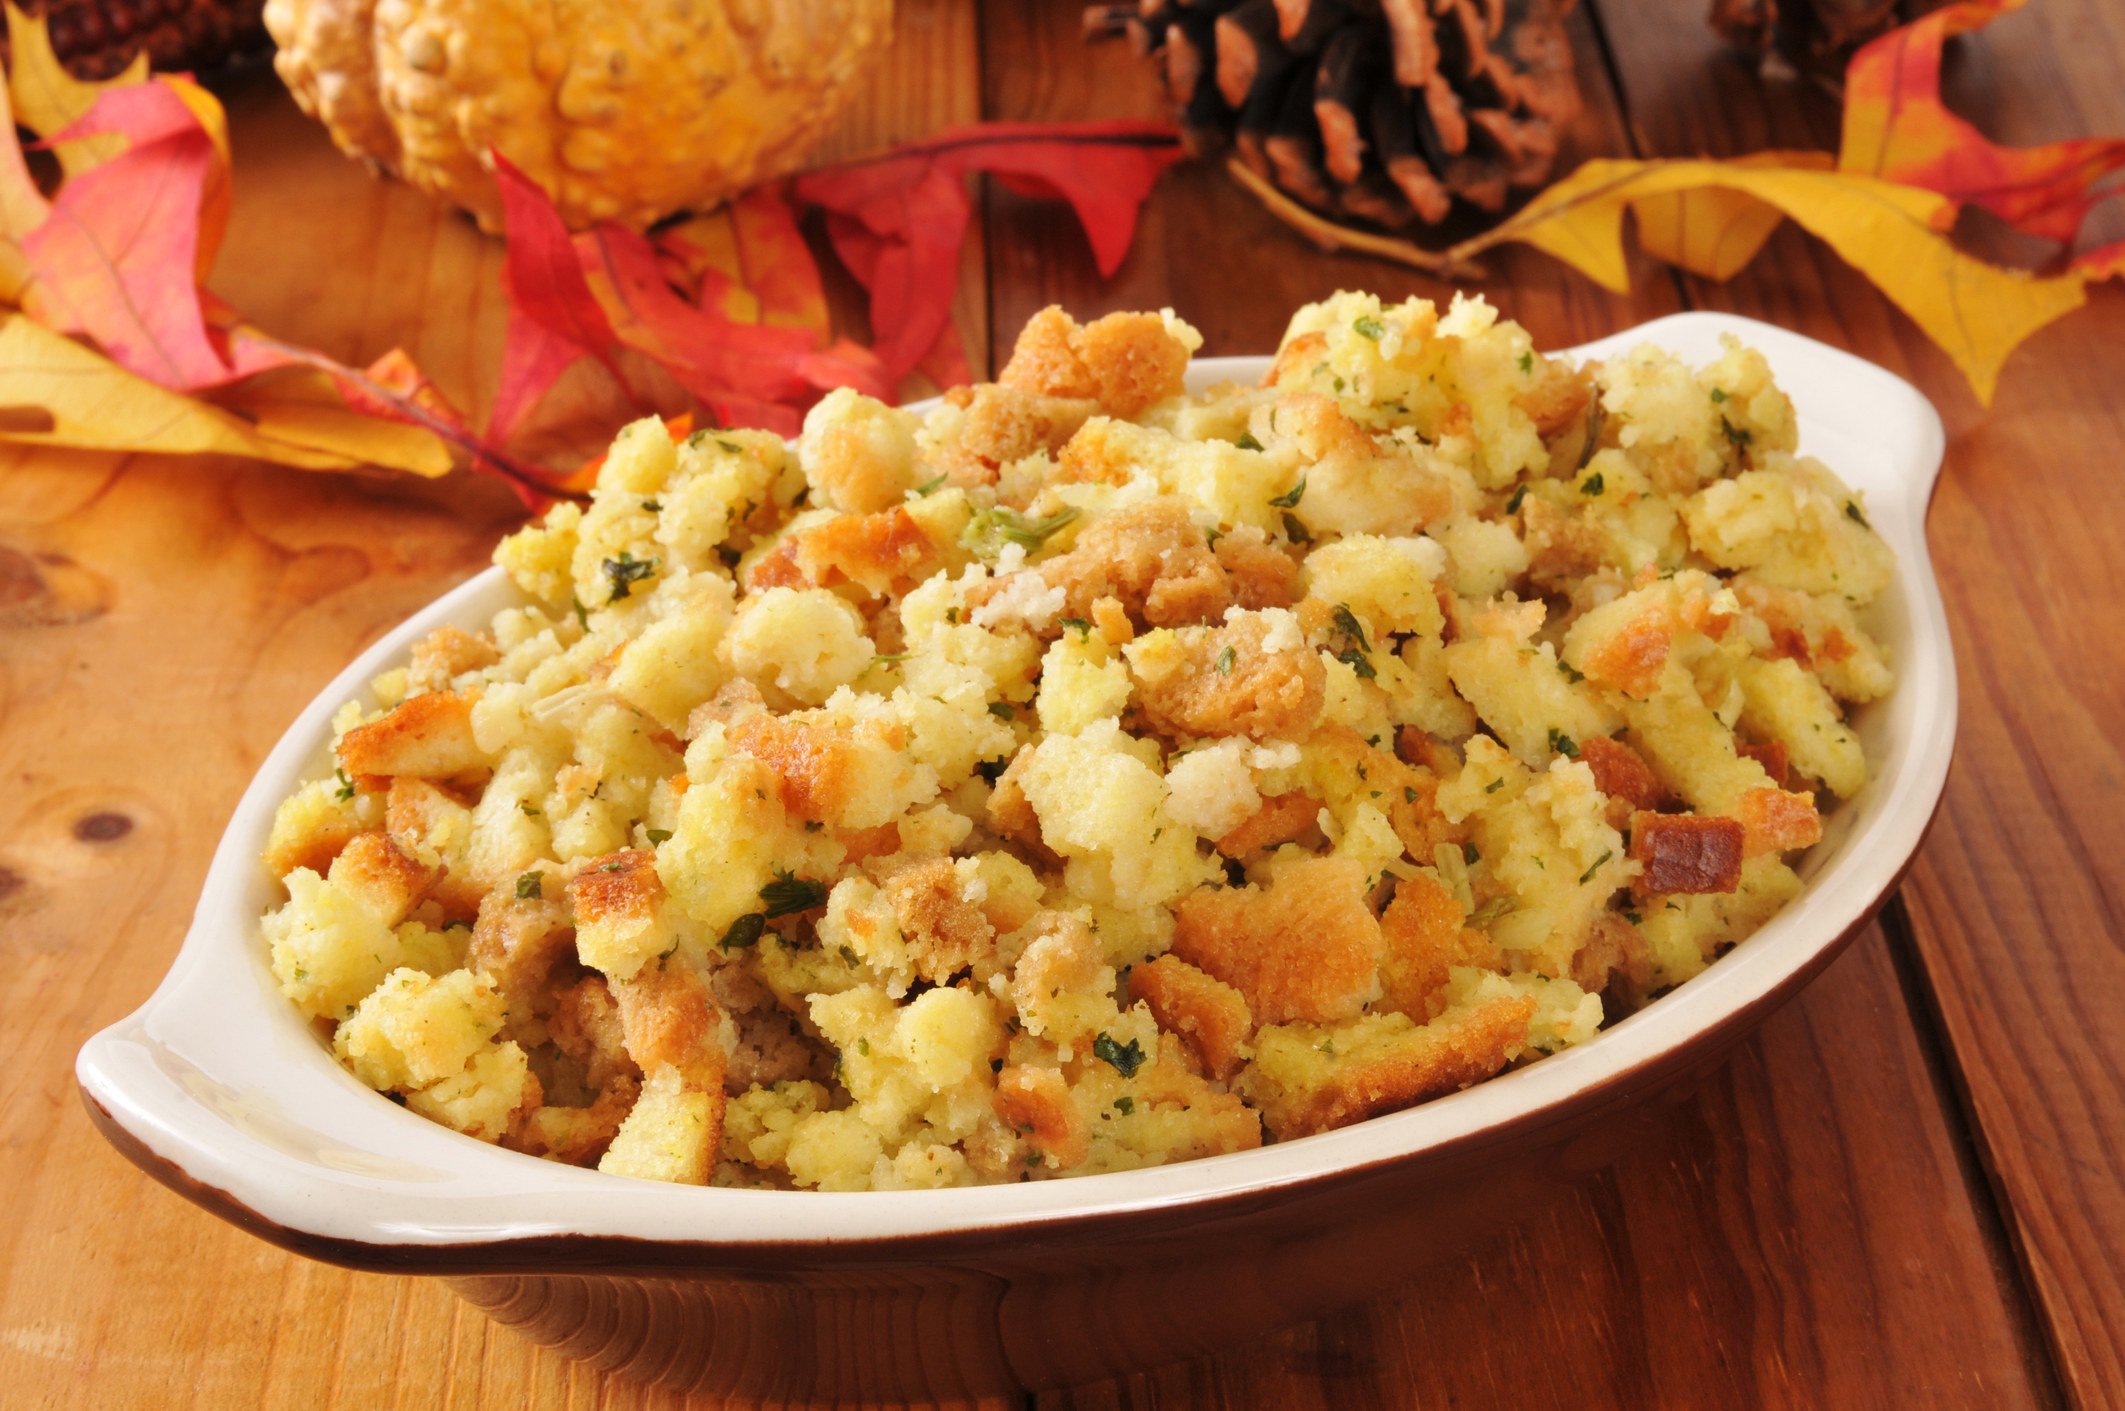 A small casserole dish of cornbread stuffing on a rustic wooden table.